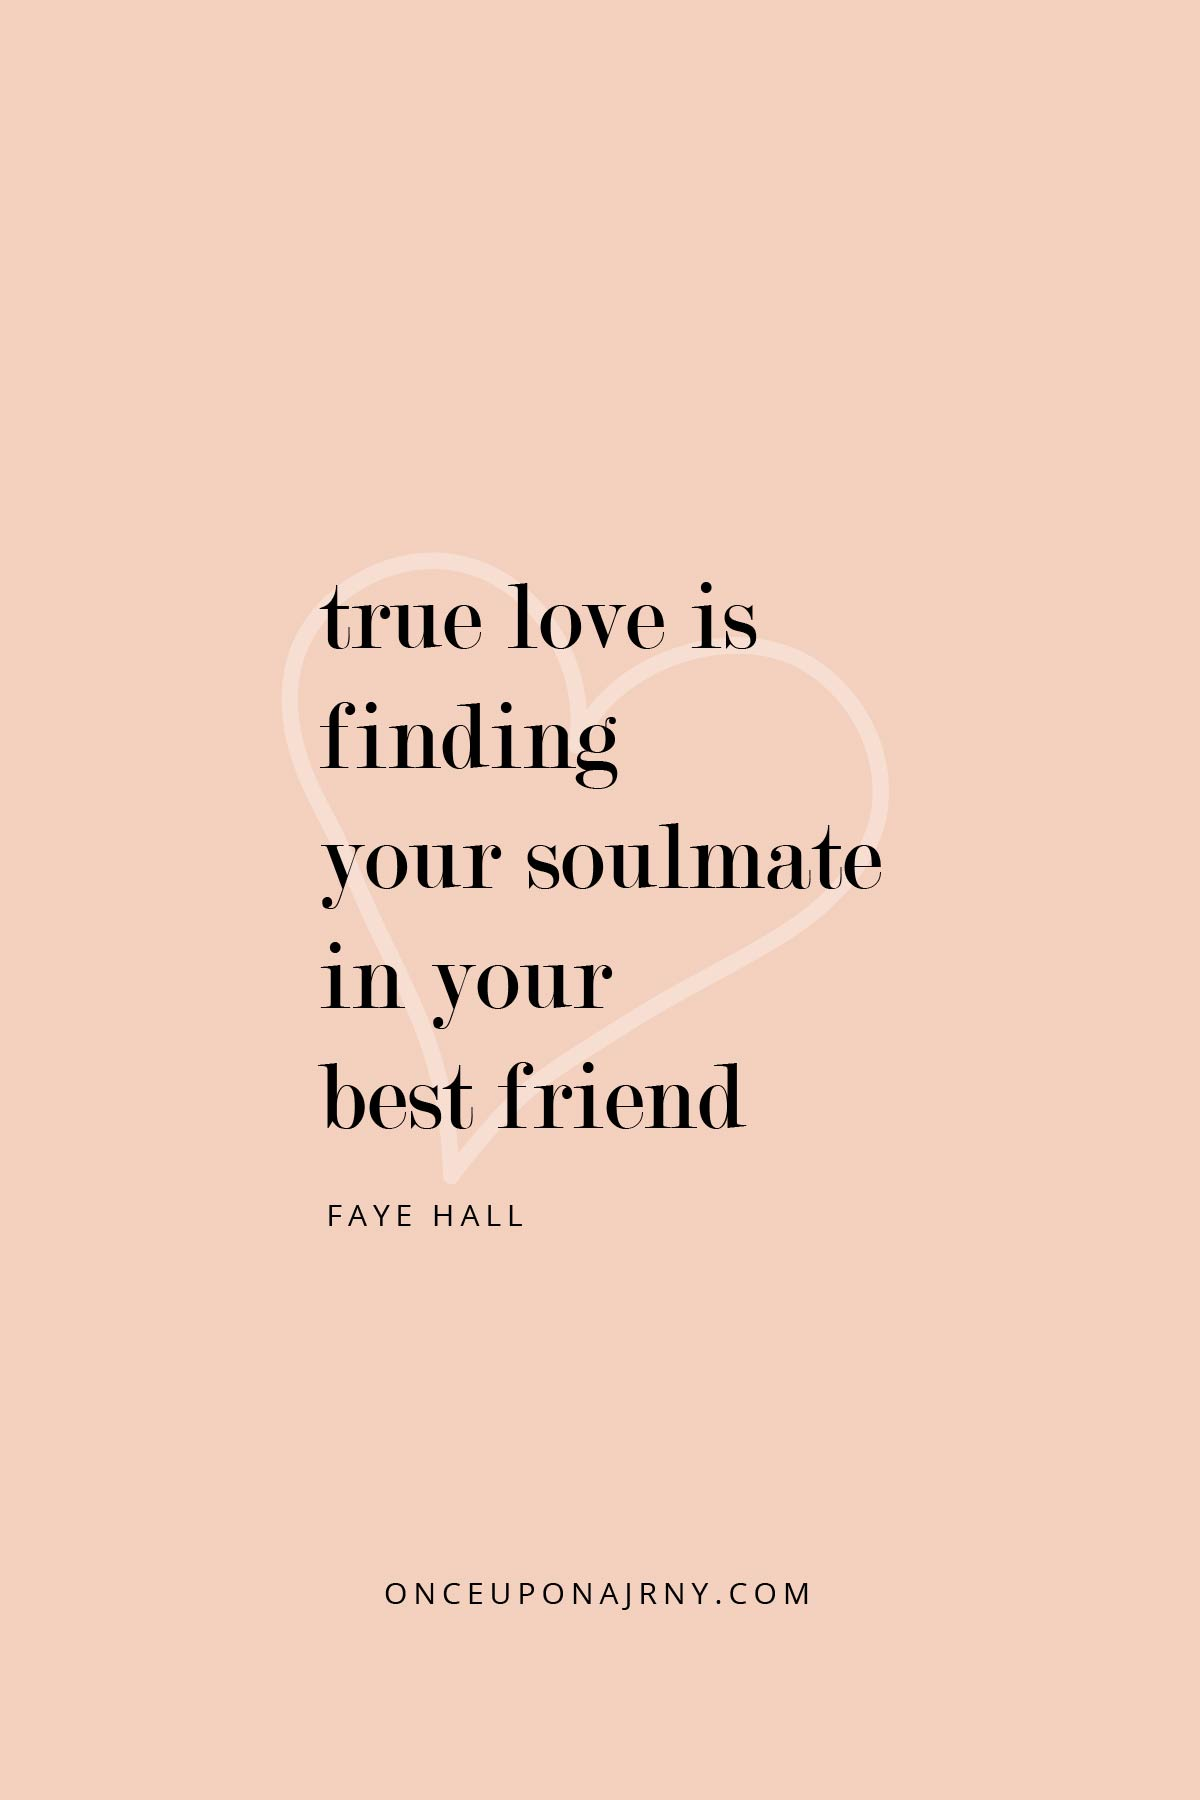 True love is finding your soulmate in your best friend. - Faye Hall lgbtq quotes